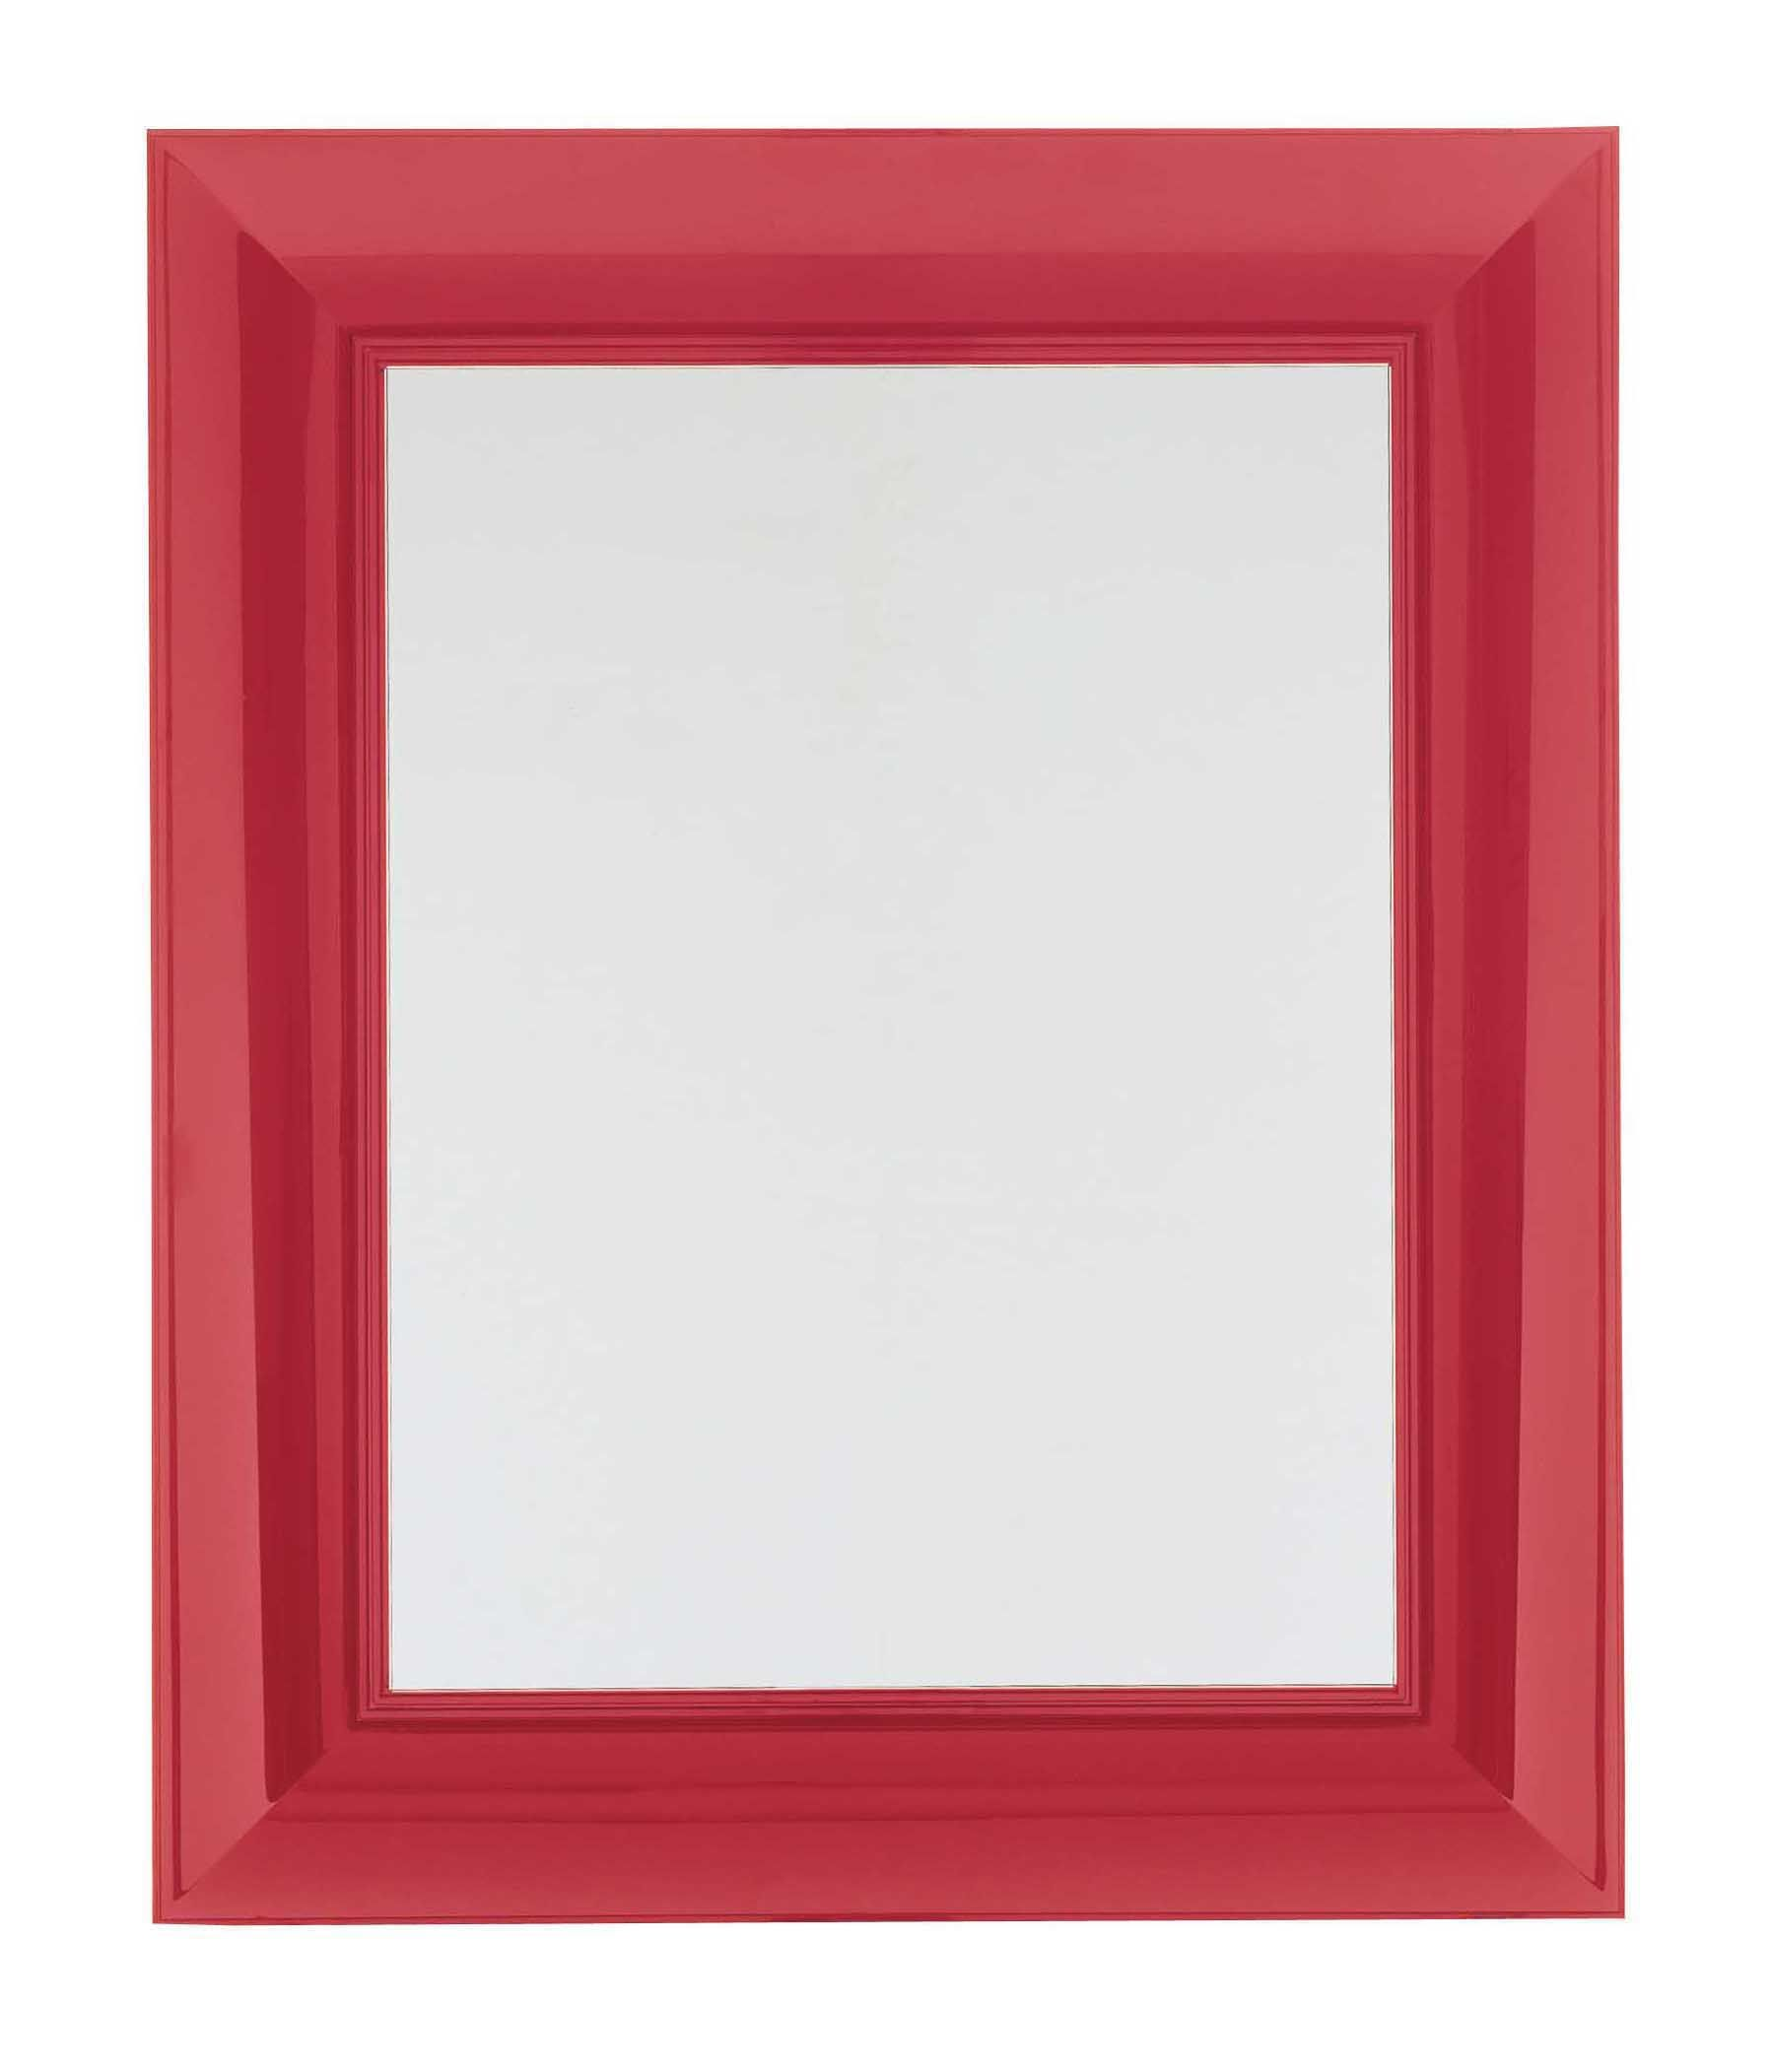 Furniture - Mirrors - Francois Ghost Wall mirror - Large - 88 x 111 cm by Kartell - Red - Polycarbonate